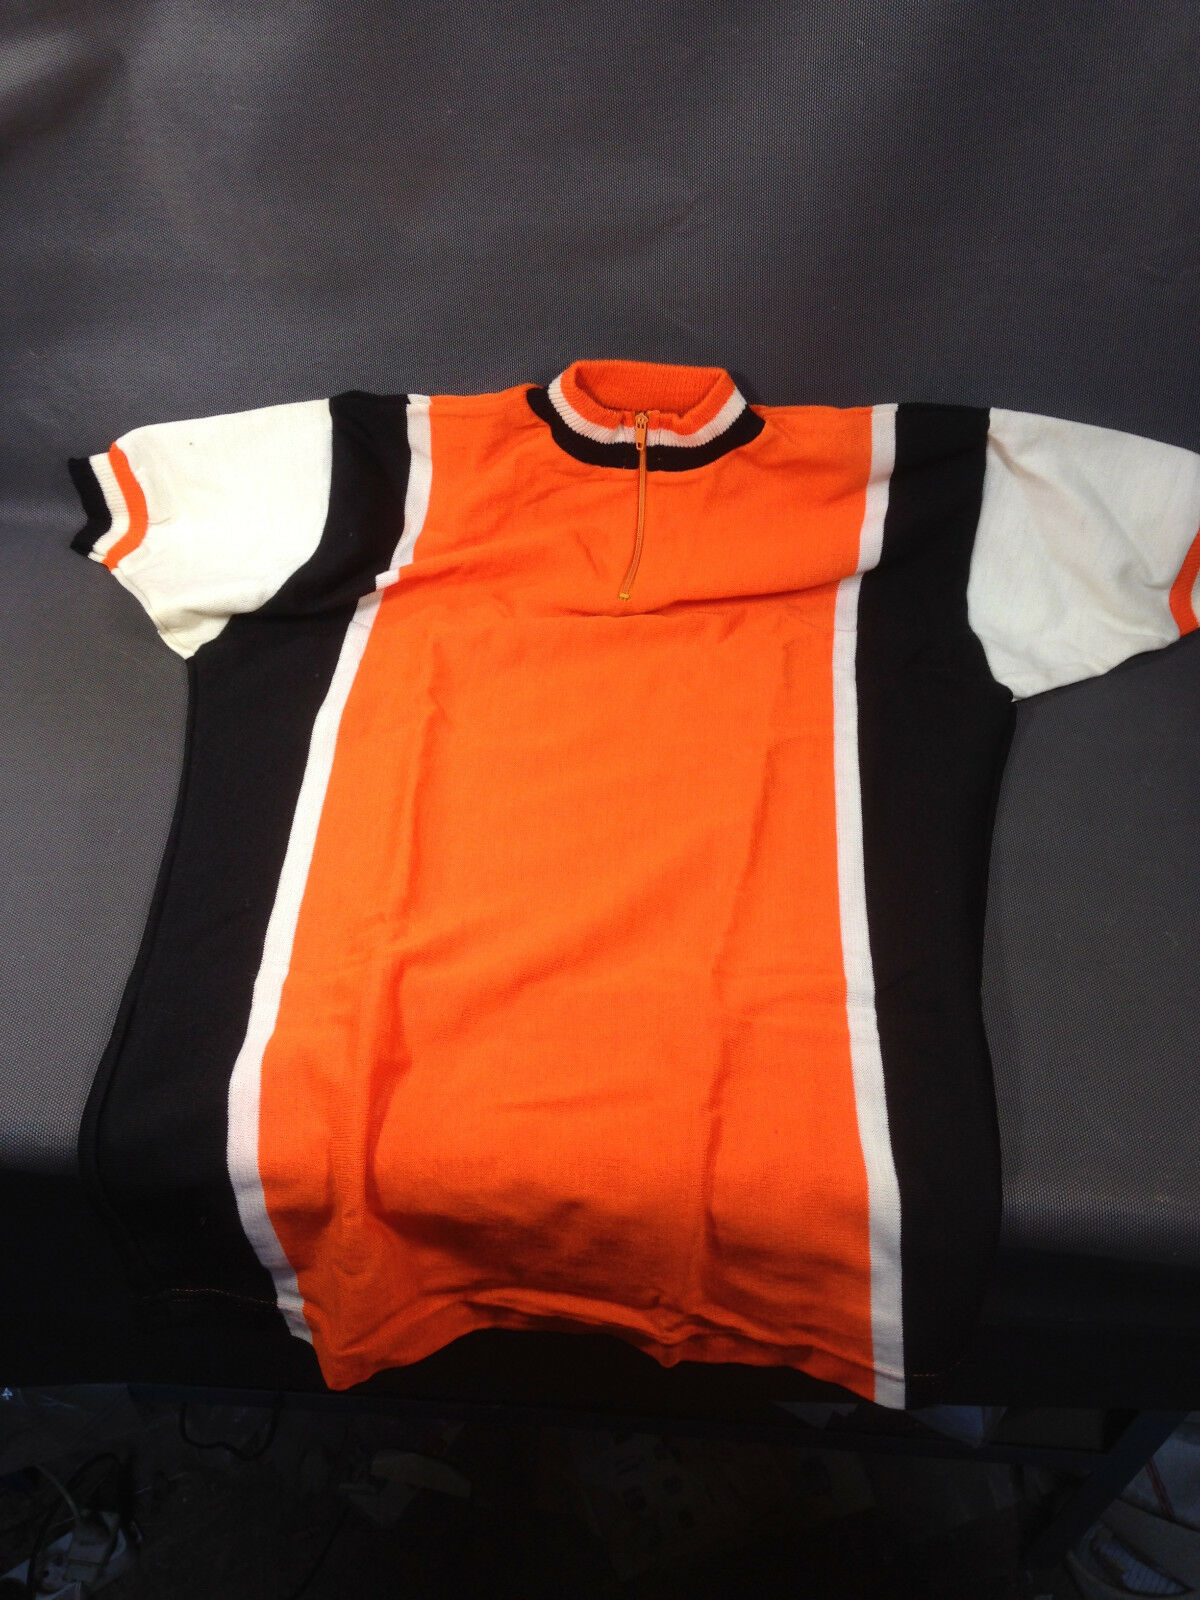 Old vintage Radfahren jersey Orange new collection Radfahren aed